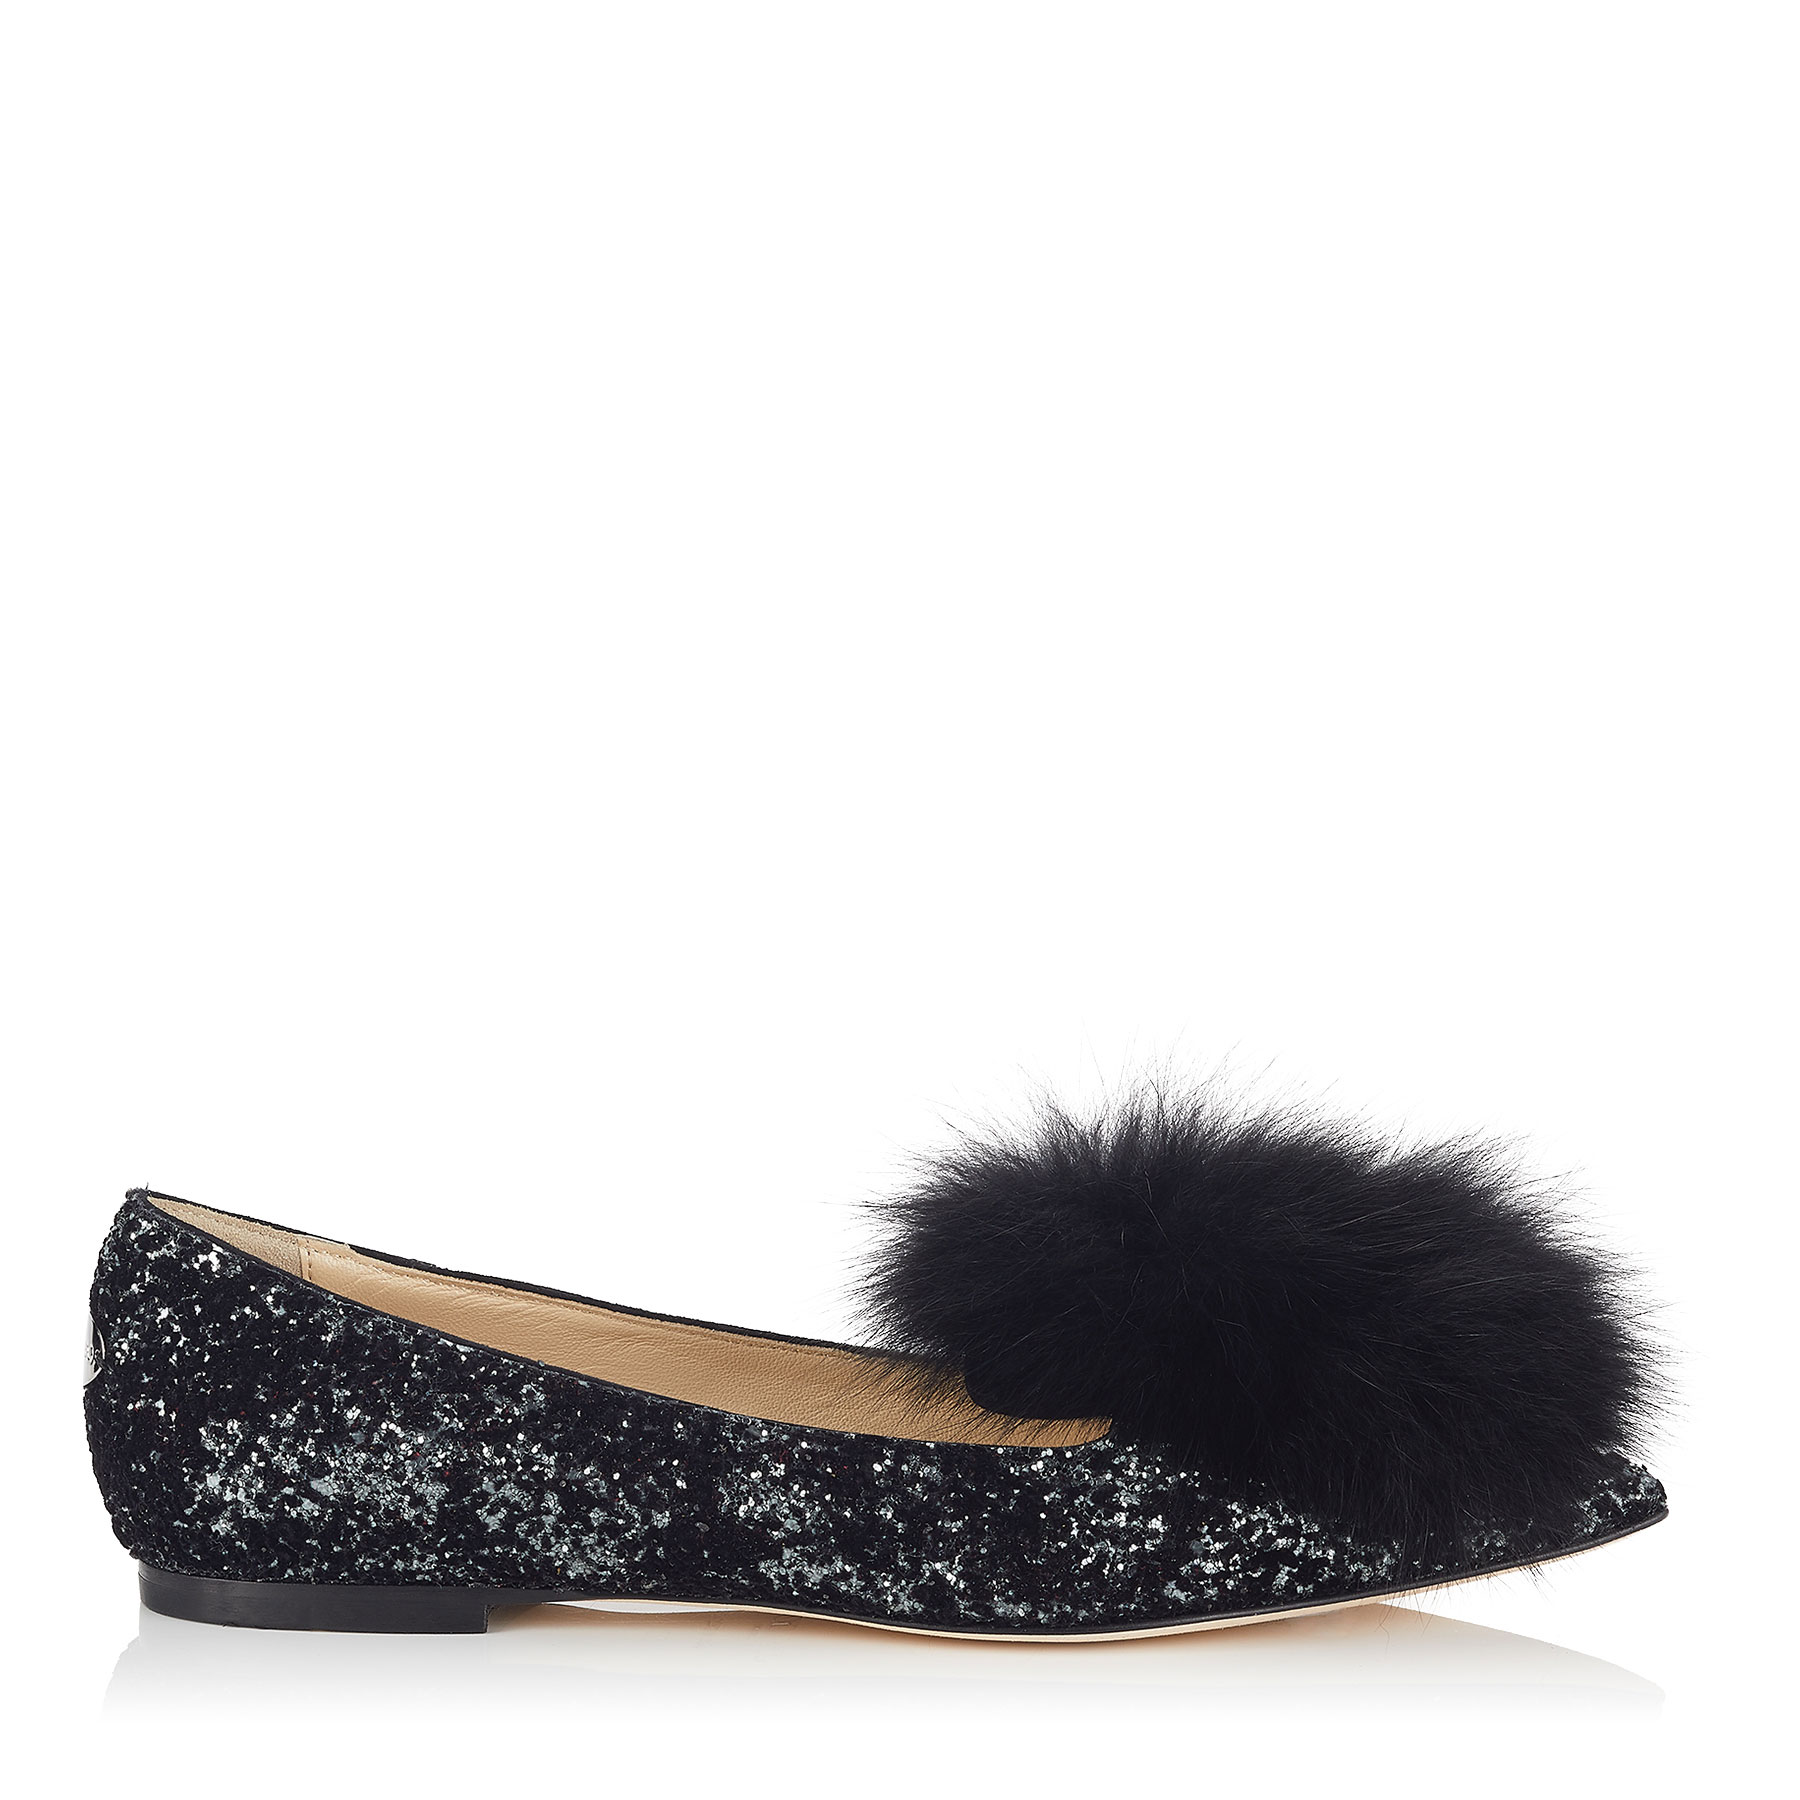 GALE FLAT Anthracite and Black Velvet Glitter Devore Pointy Toe Flats with Fox Fur by Jimmy Choo